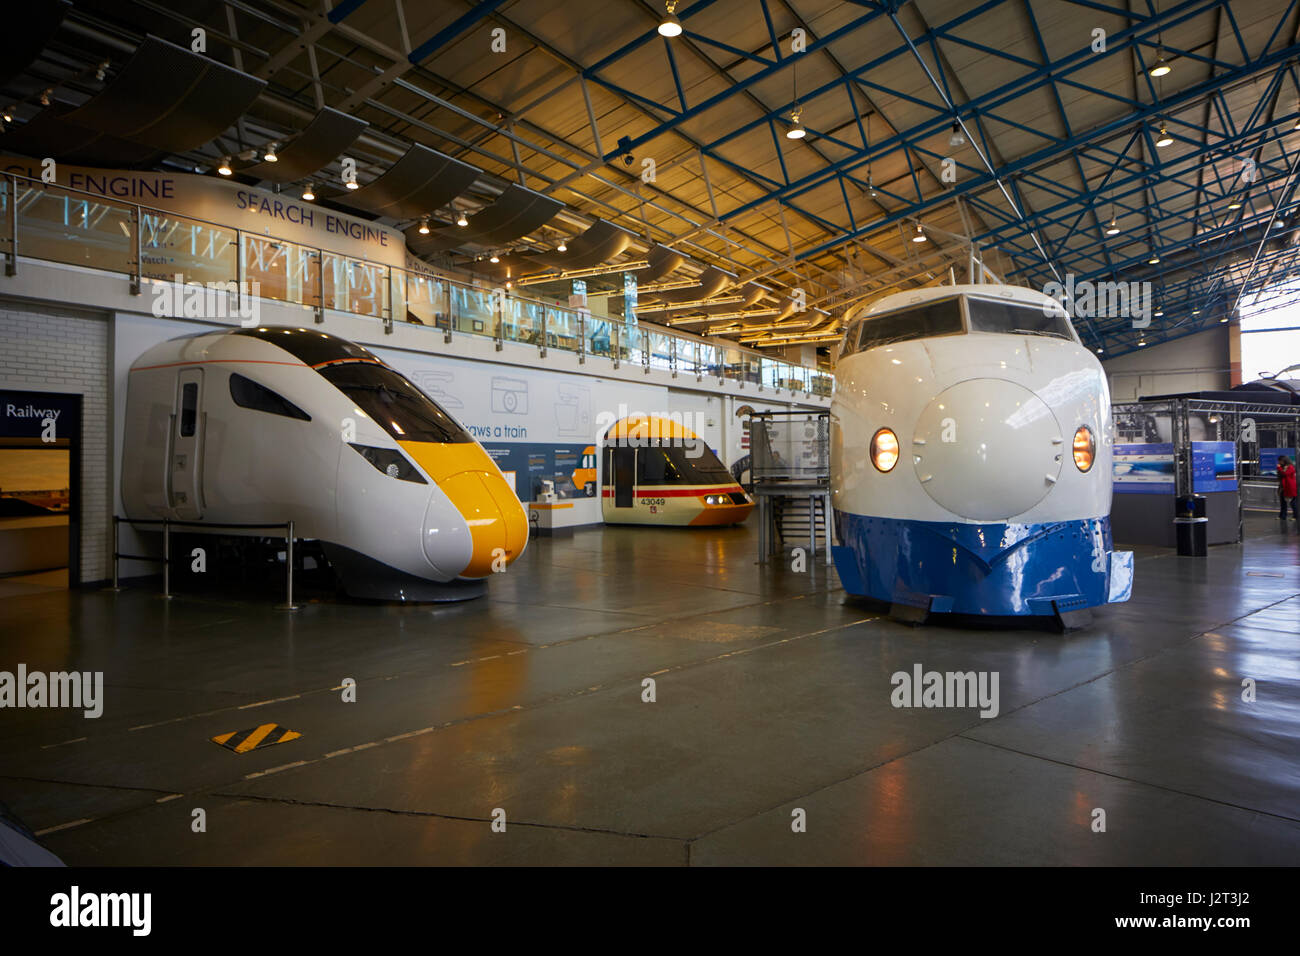 West Japan Railways Shinkansen 'Bullet Train Great Hall York, National Railway Museum. - Stock Image